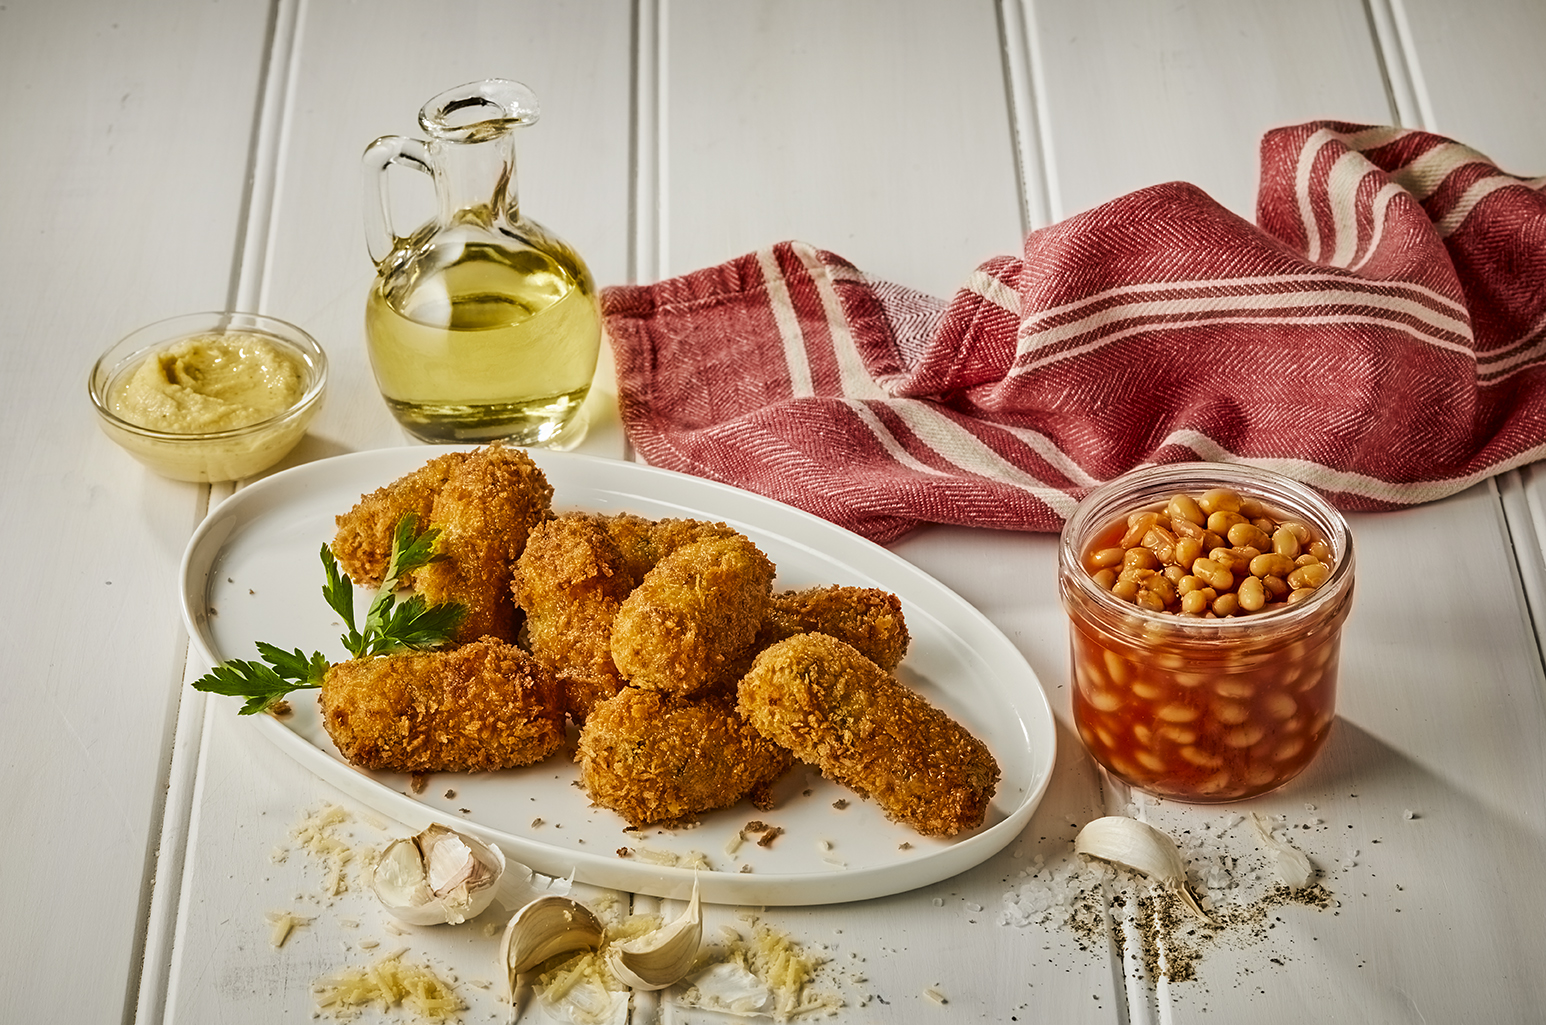 Baked Bean and Mozzarella Croquettes